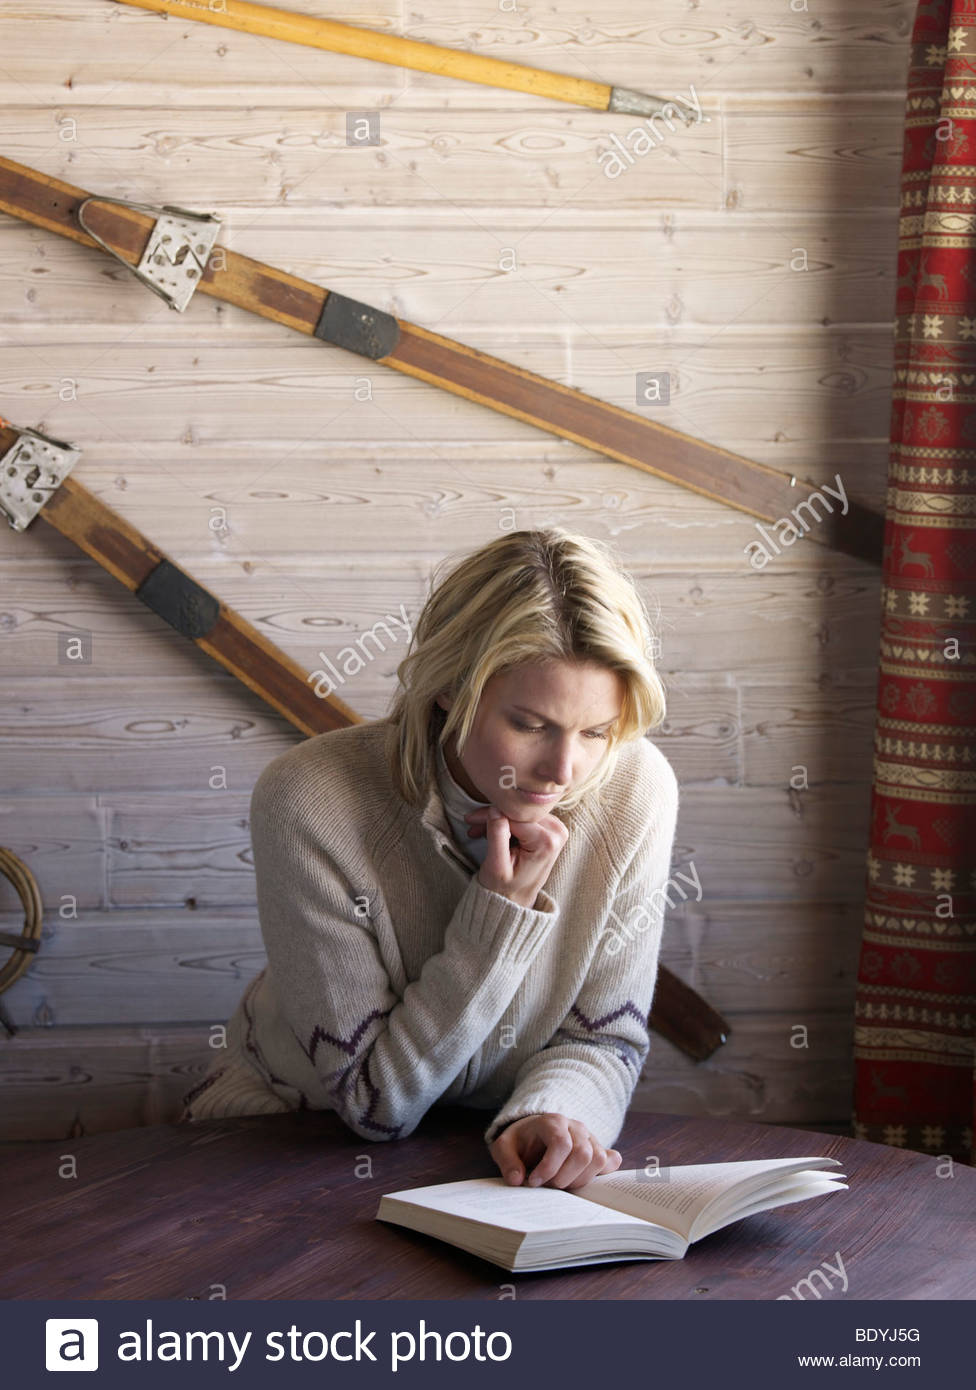 woman reading in ski lodge table - Stock Image